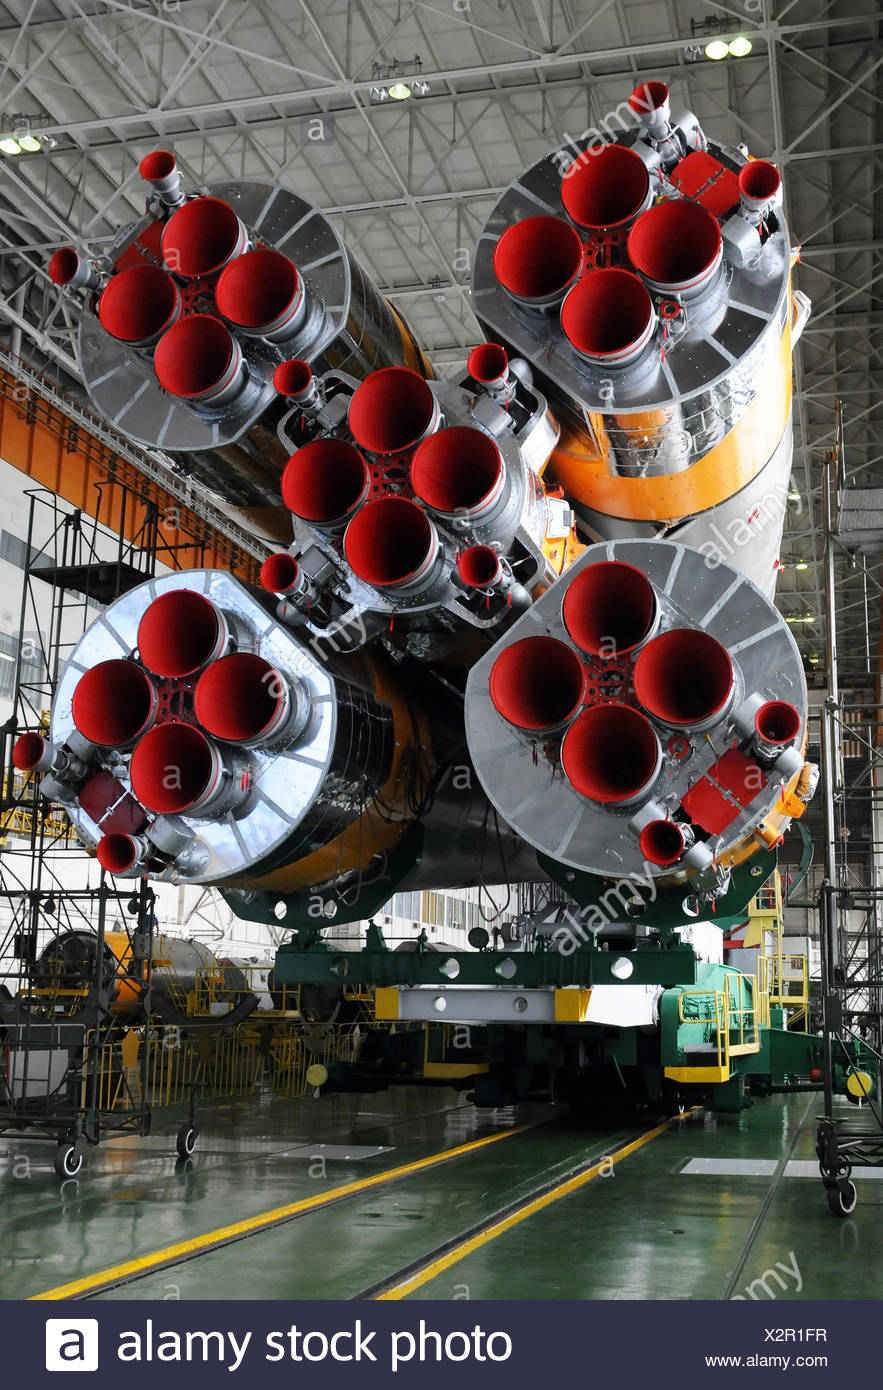 Soyuz Rocket and Soyuz Spacecraft in Baikonur - Stock Image